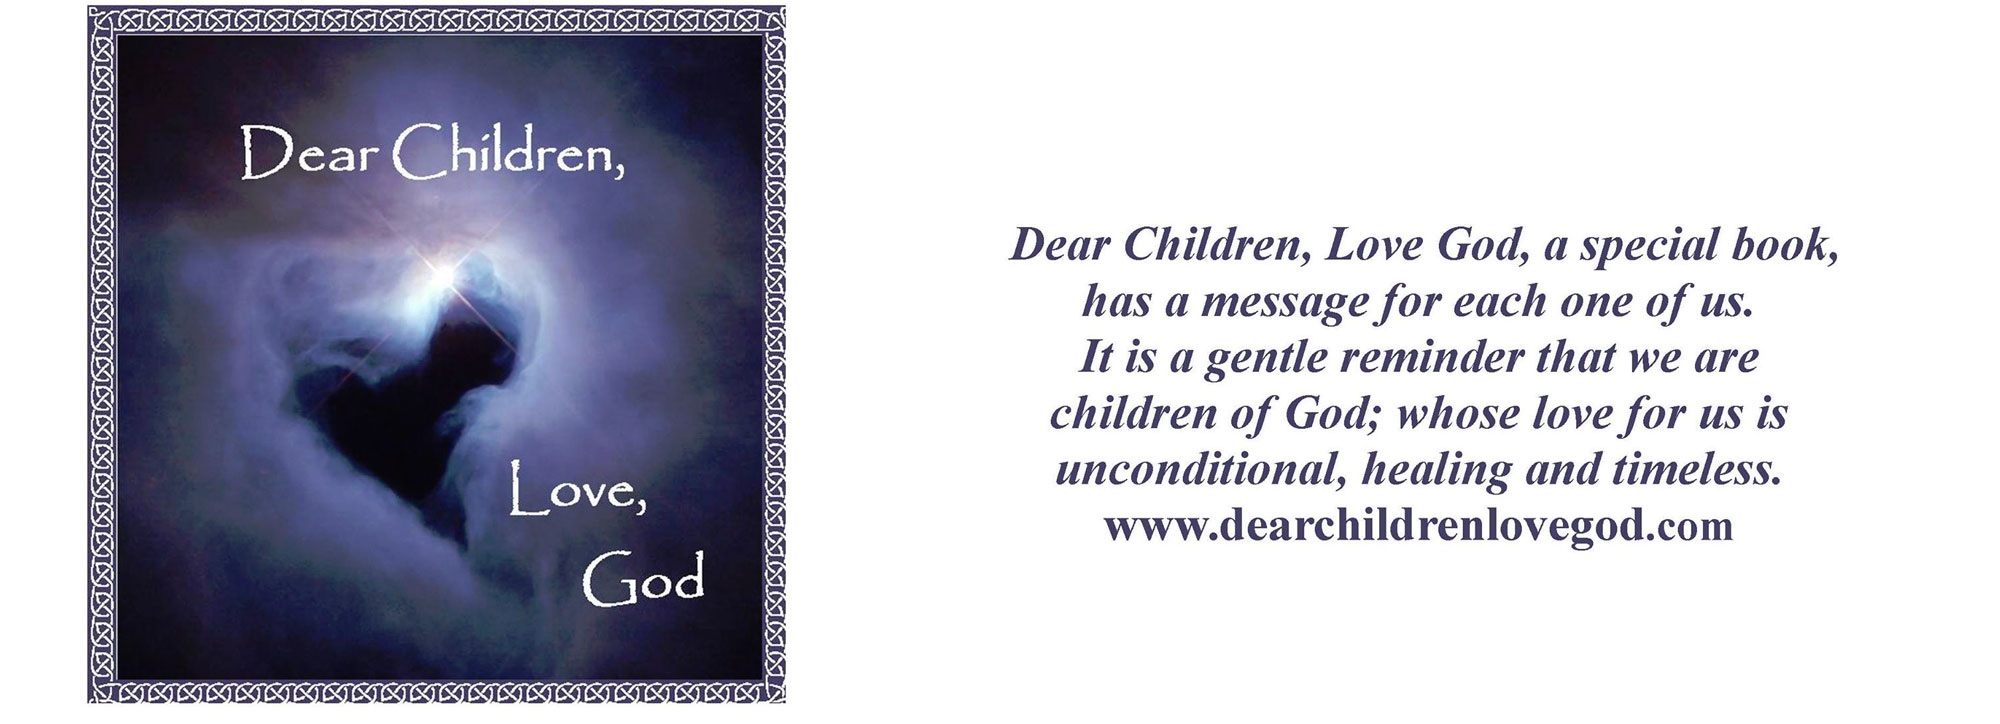 Dear Children, Love God